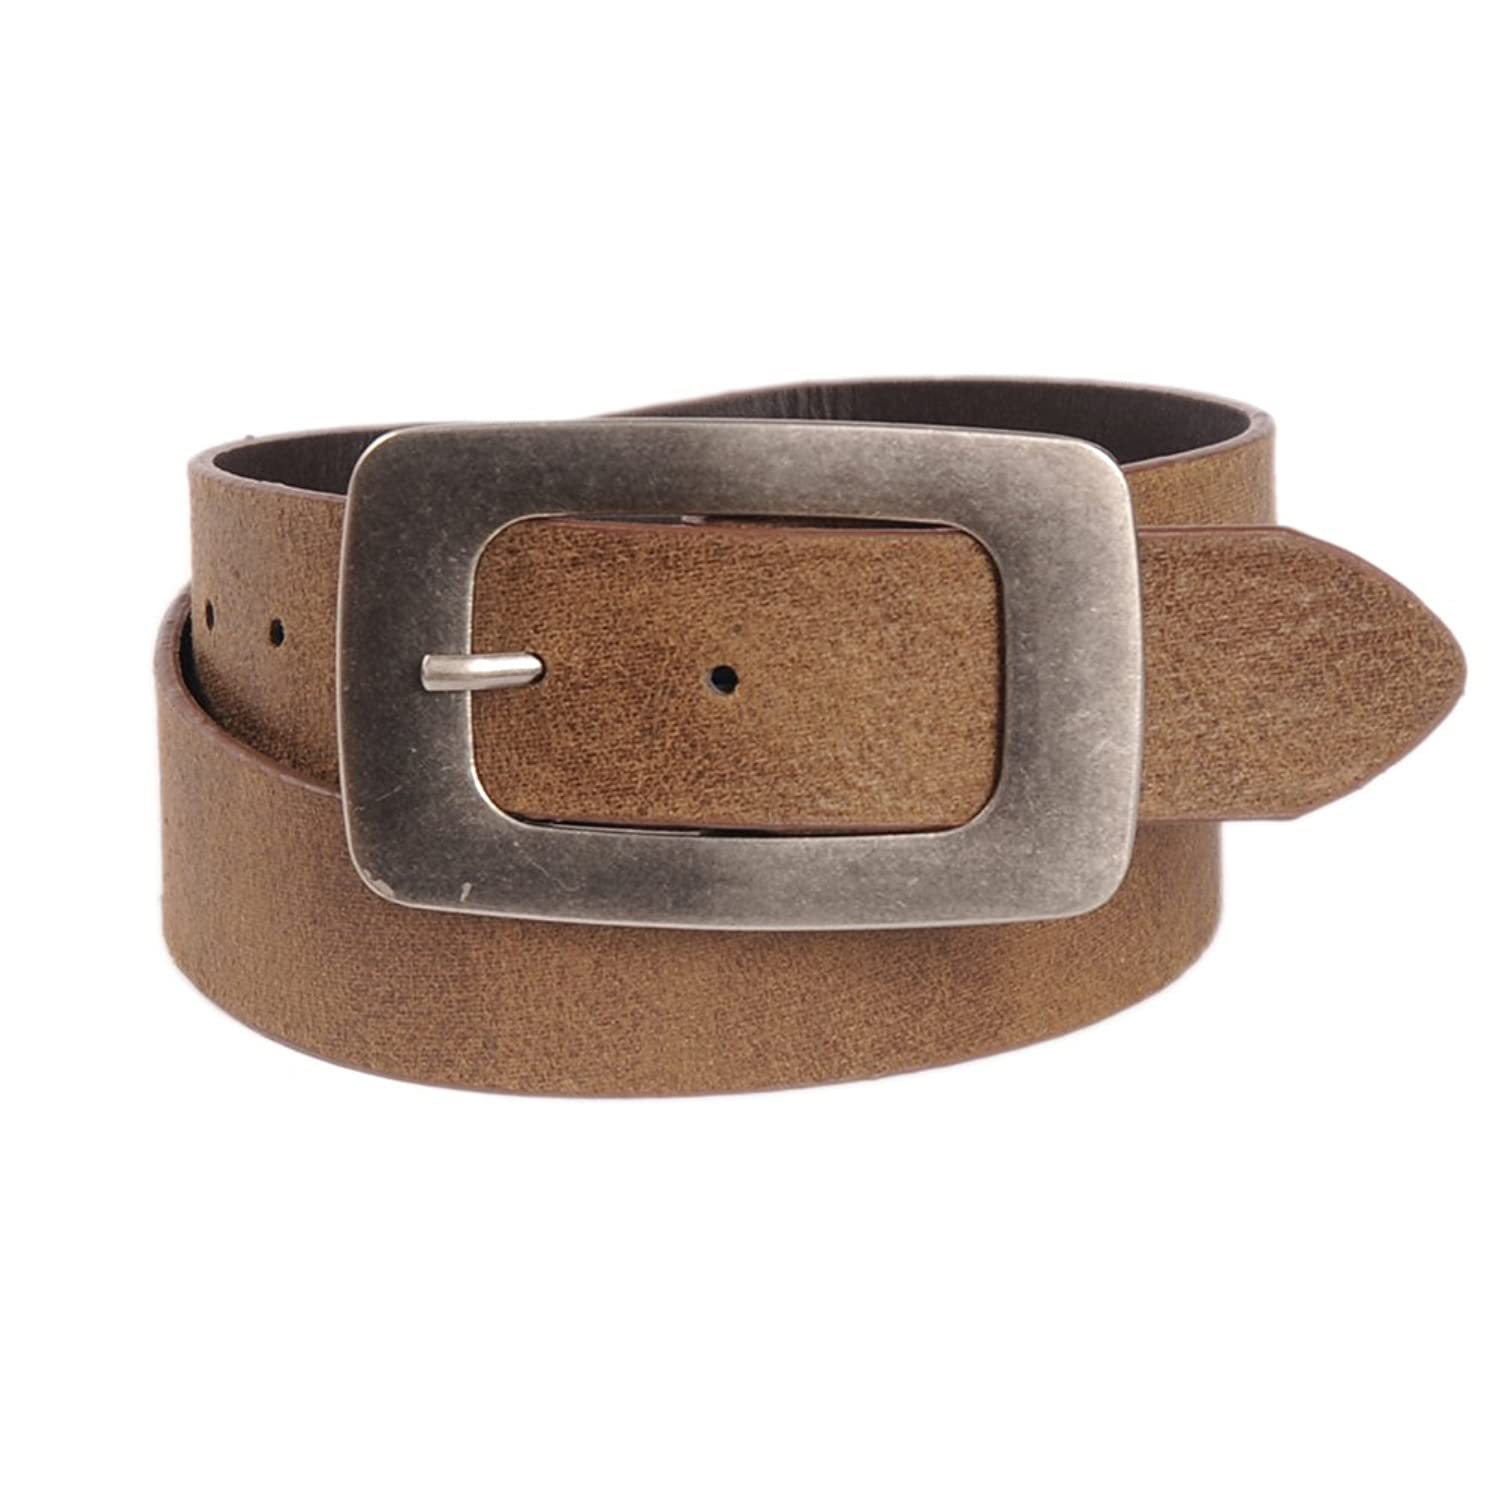 Sunny Belt Womens Oversized Metal Buckle Soft Textured Brown Belt